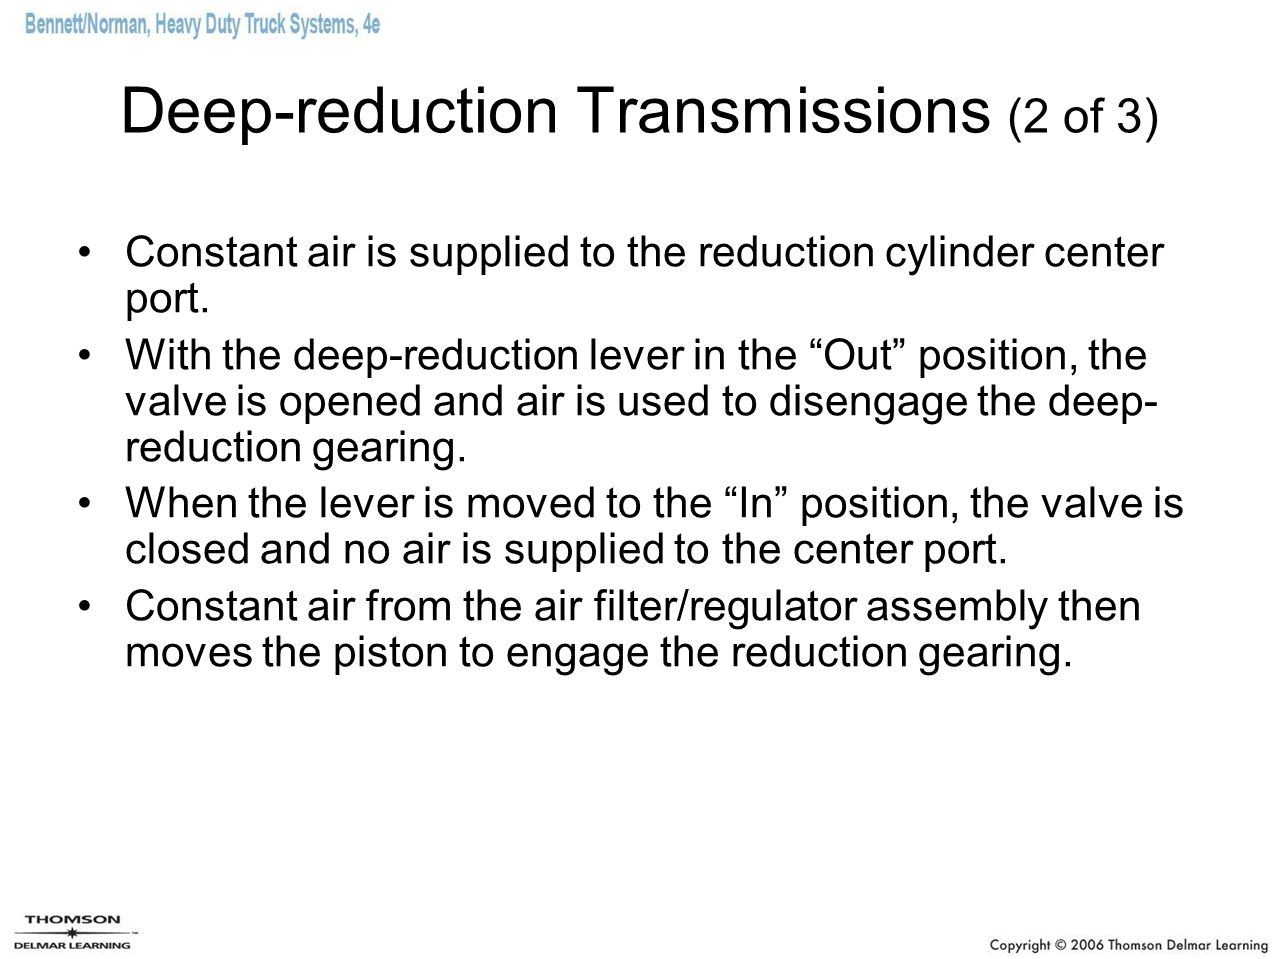 Deep-reduction Transmissions (2 of 3)